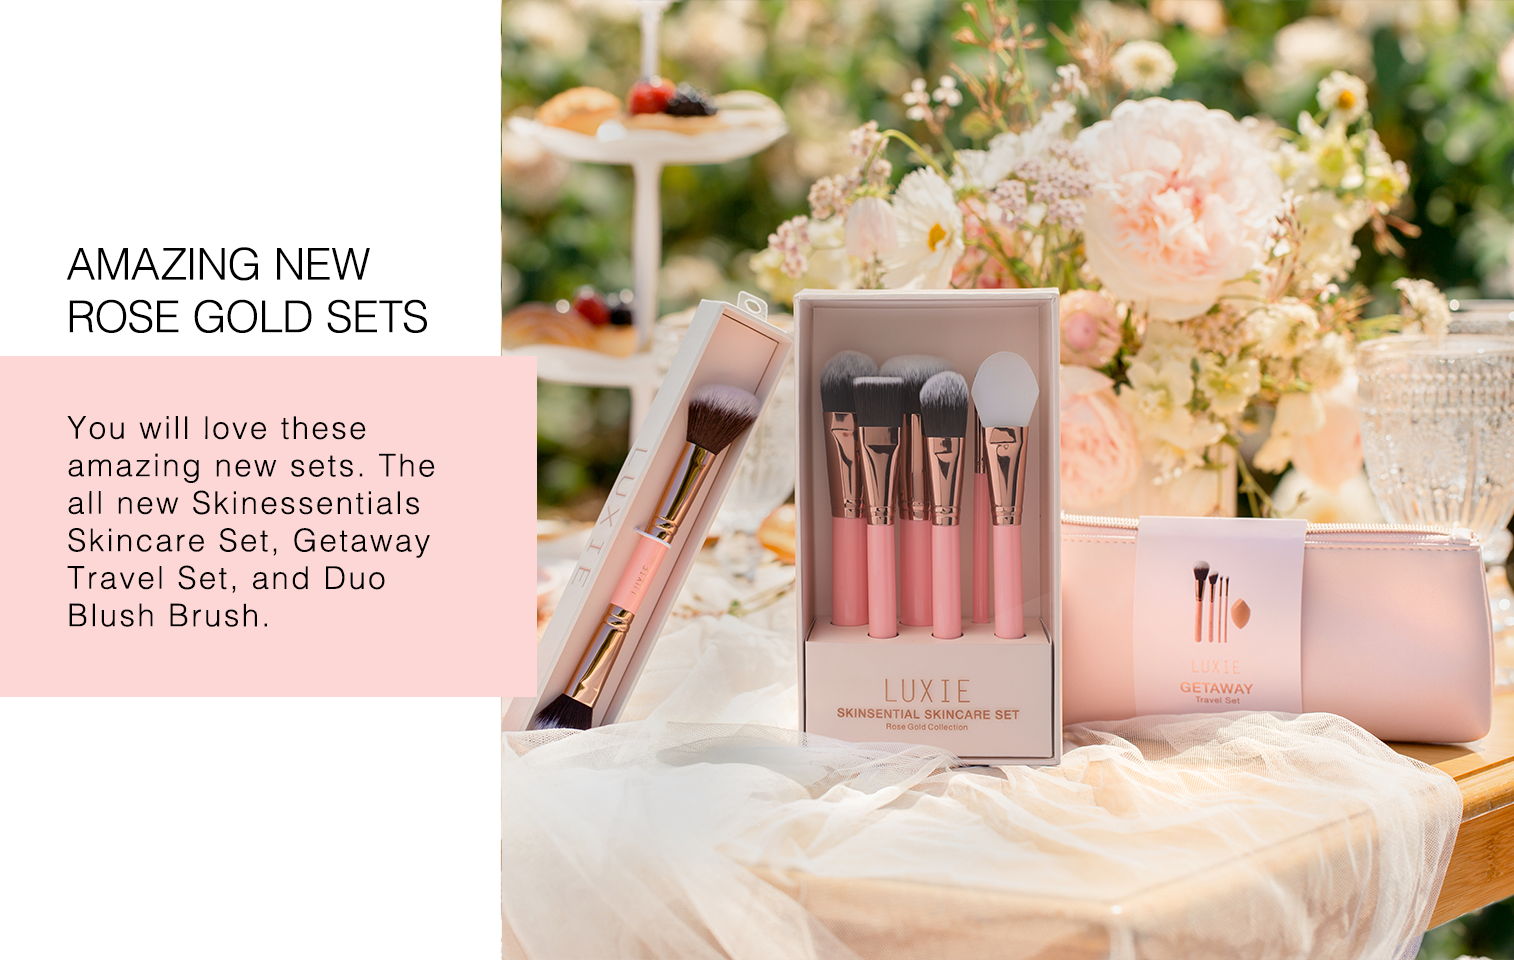 Luxie's New Rose Gold Sets